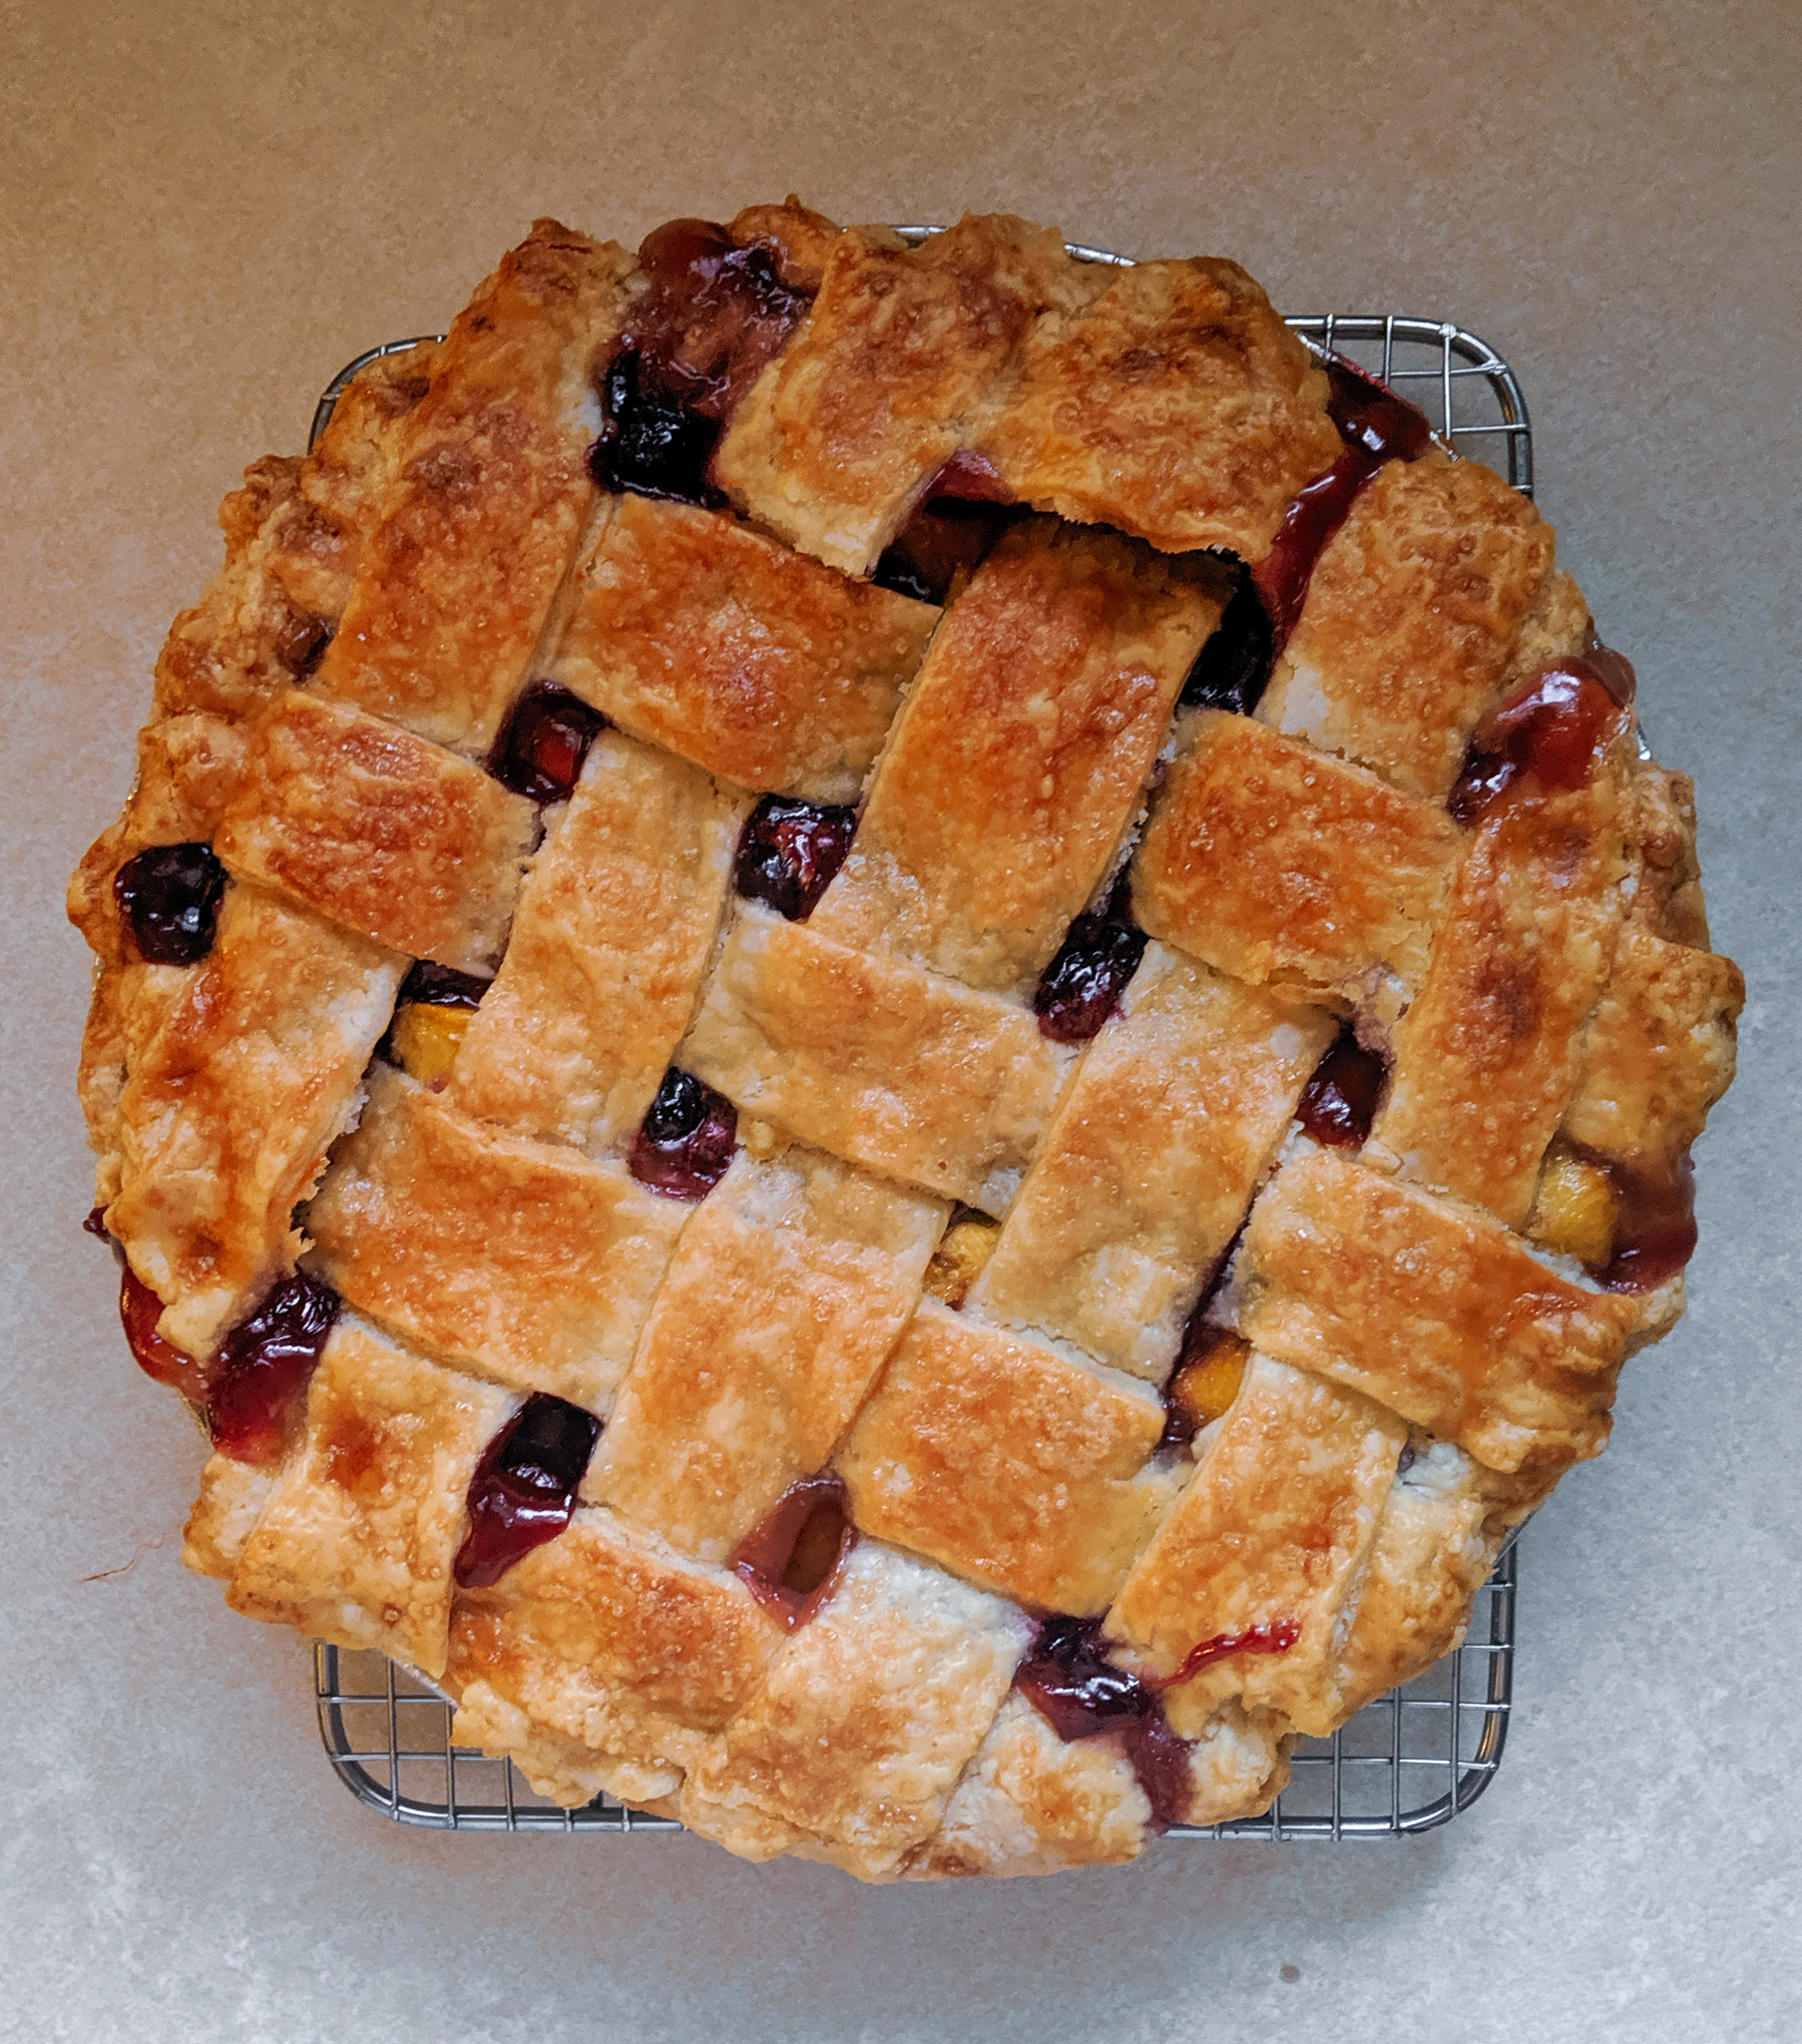 Sourdough Pie Crust with a Bourbon Peach Blueberry Filling